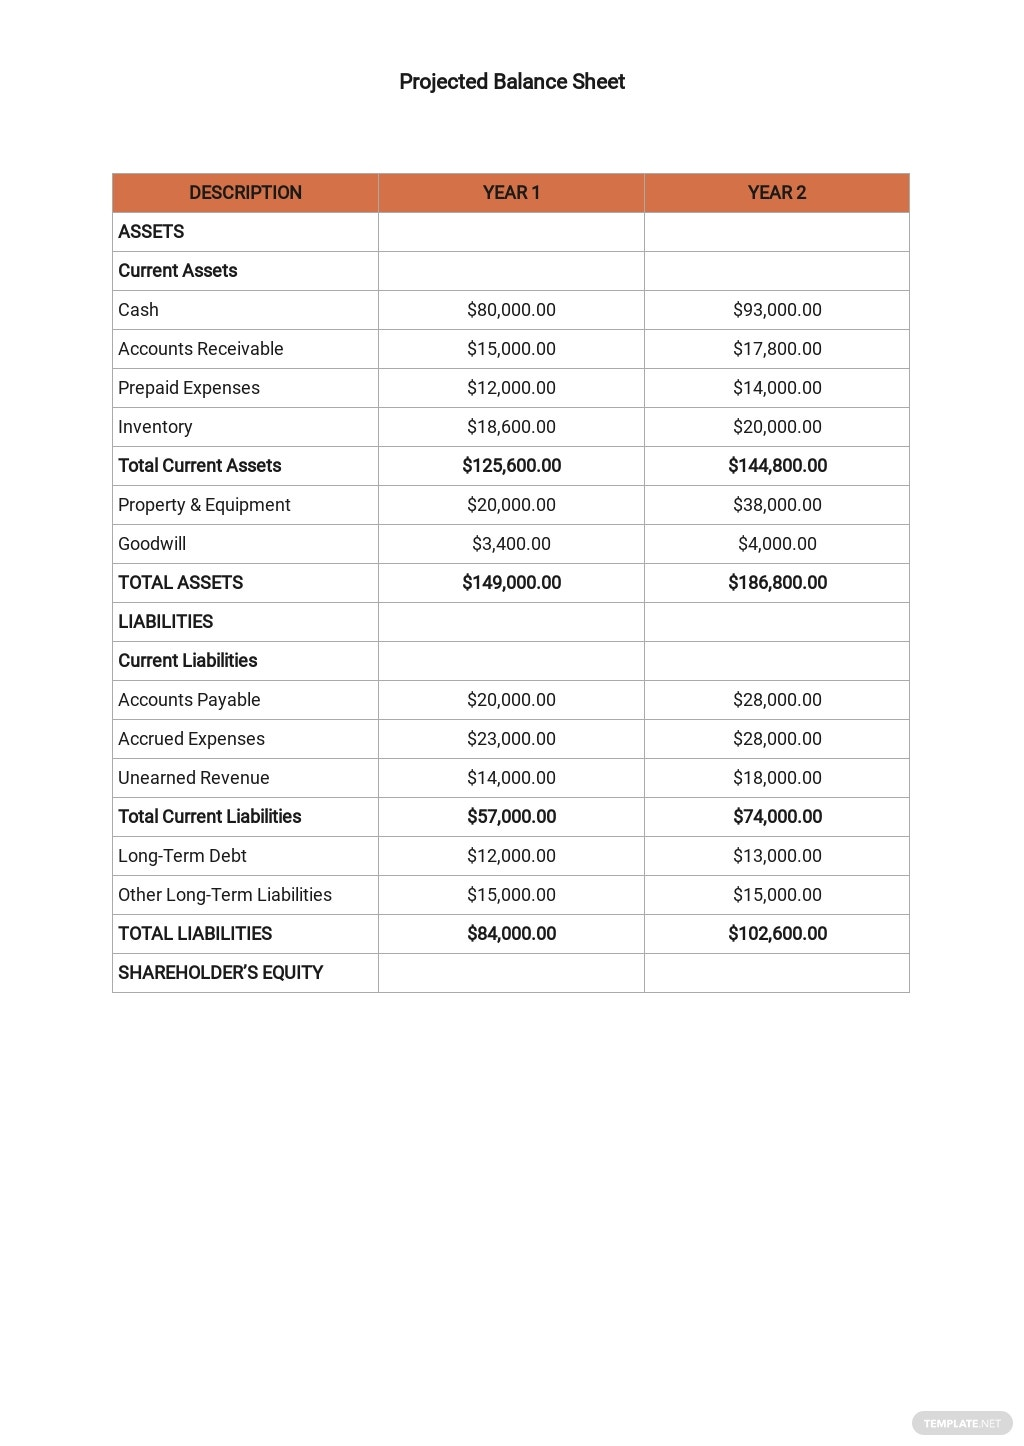 Human Resources Consulting Business Plan Template 8.jpe